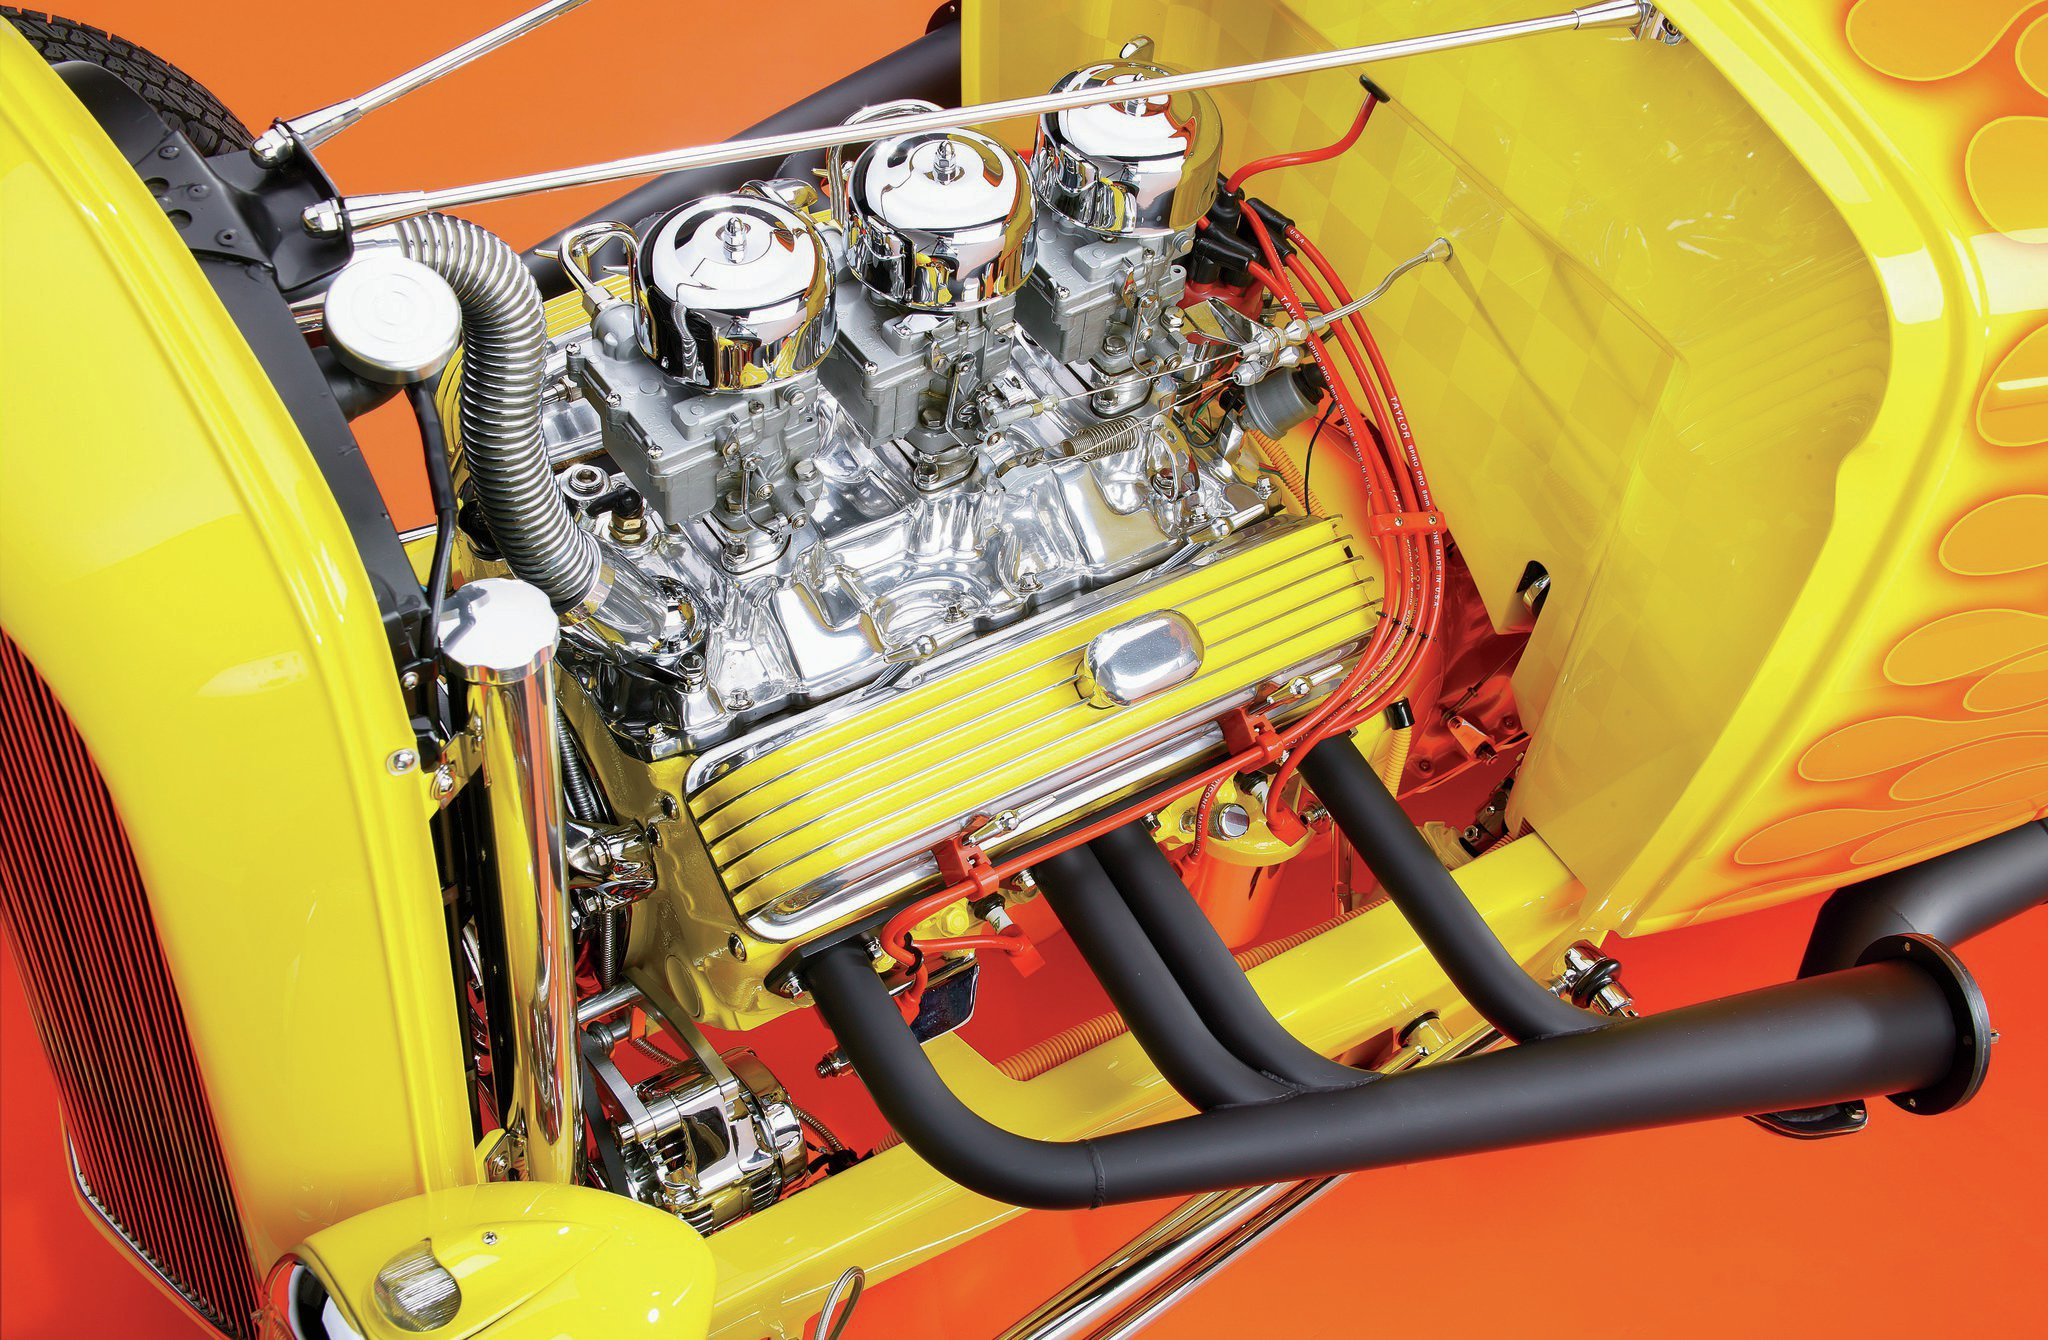 The highly detailed 383 small-block Chevy features a great deal of chrome and polished aluminum. The ignition is Mallory with Taylor wires. The Tri-power is based on a vintage three-bolt aluminum intake with four-bolt adaptors that allow the use of a setting of three Rochester 2G carbs topped with '32 carb air cleaners filled with K&N elements.